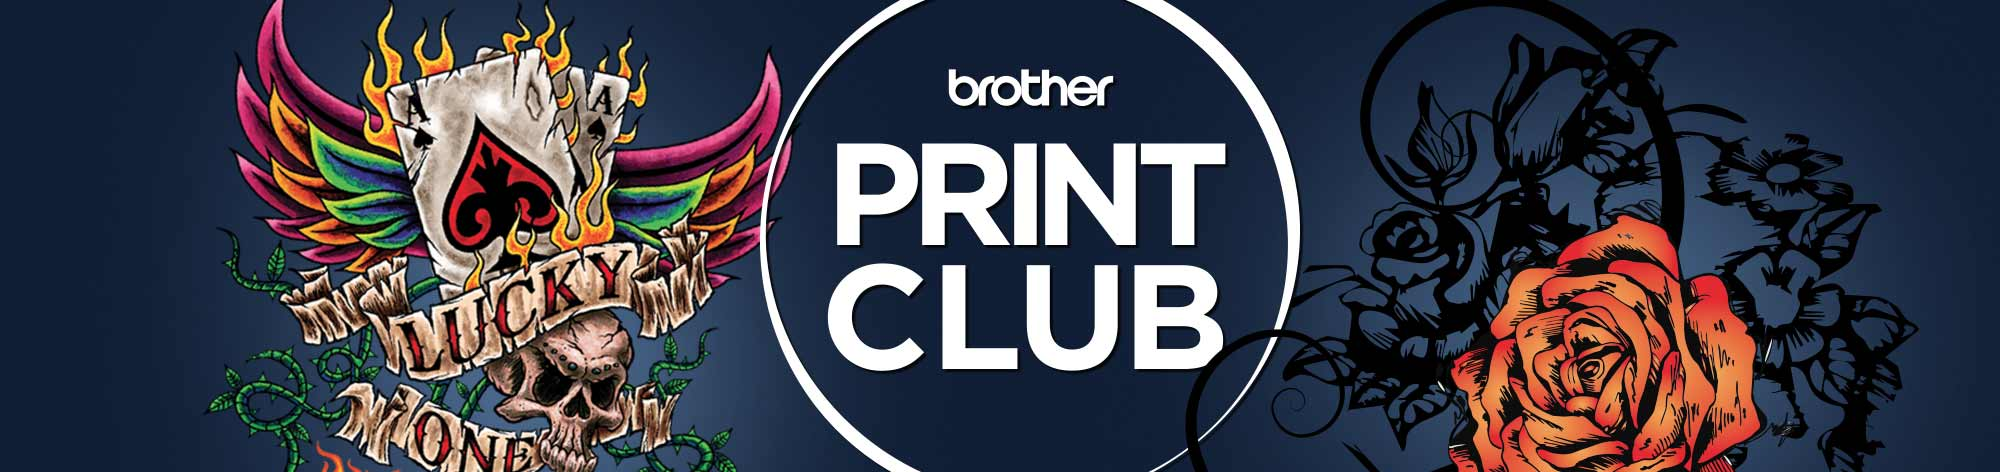 Brother Print Club